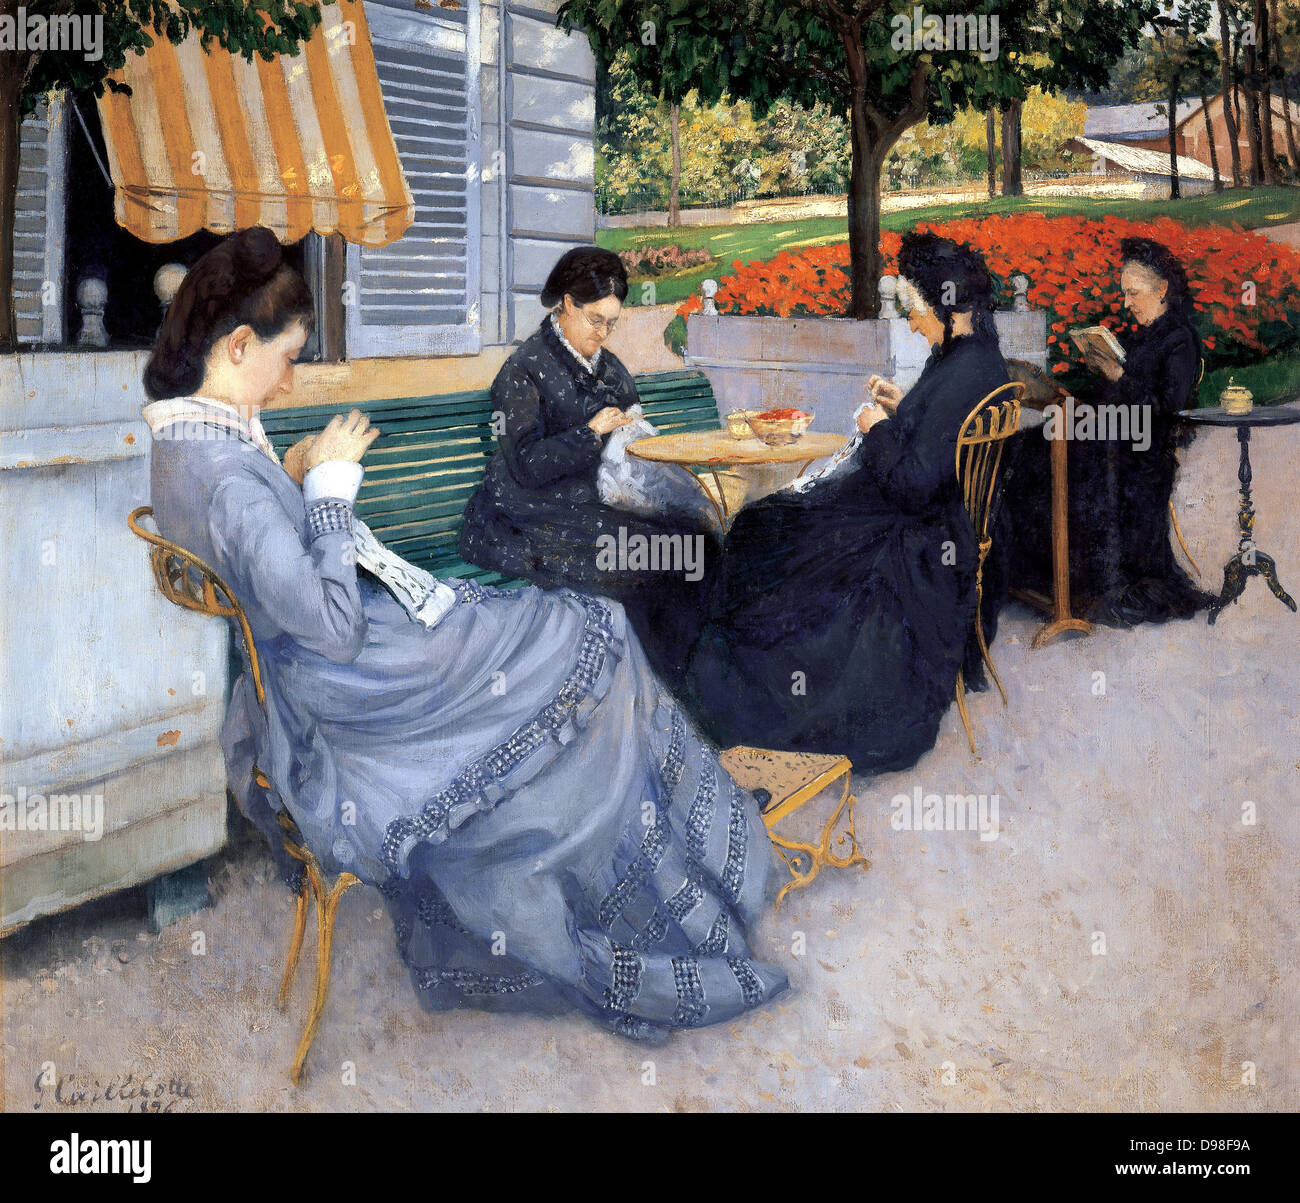 Gustave Caillebotte 1848 – 1894, French painter. (Untitled portrait of a group of women). - Stock Image